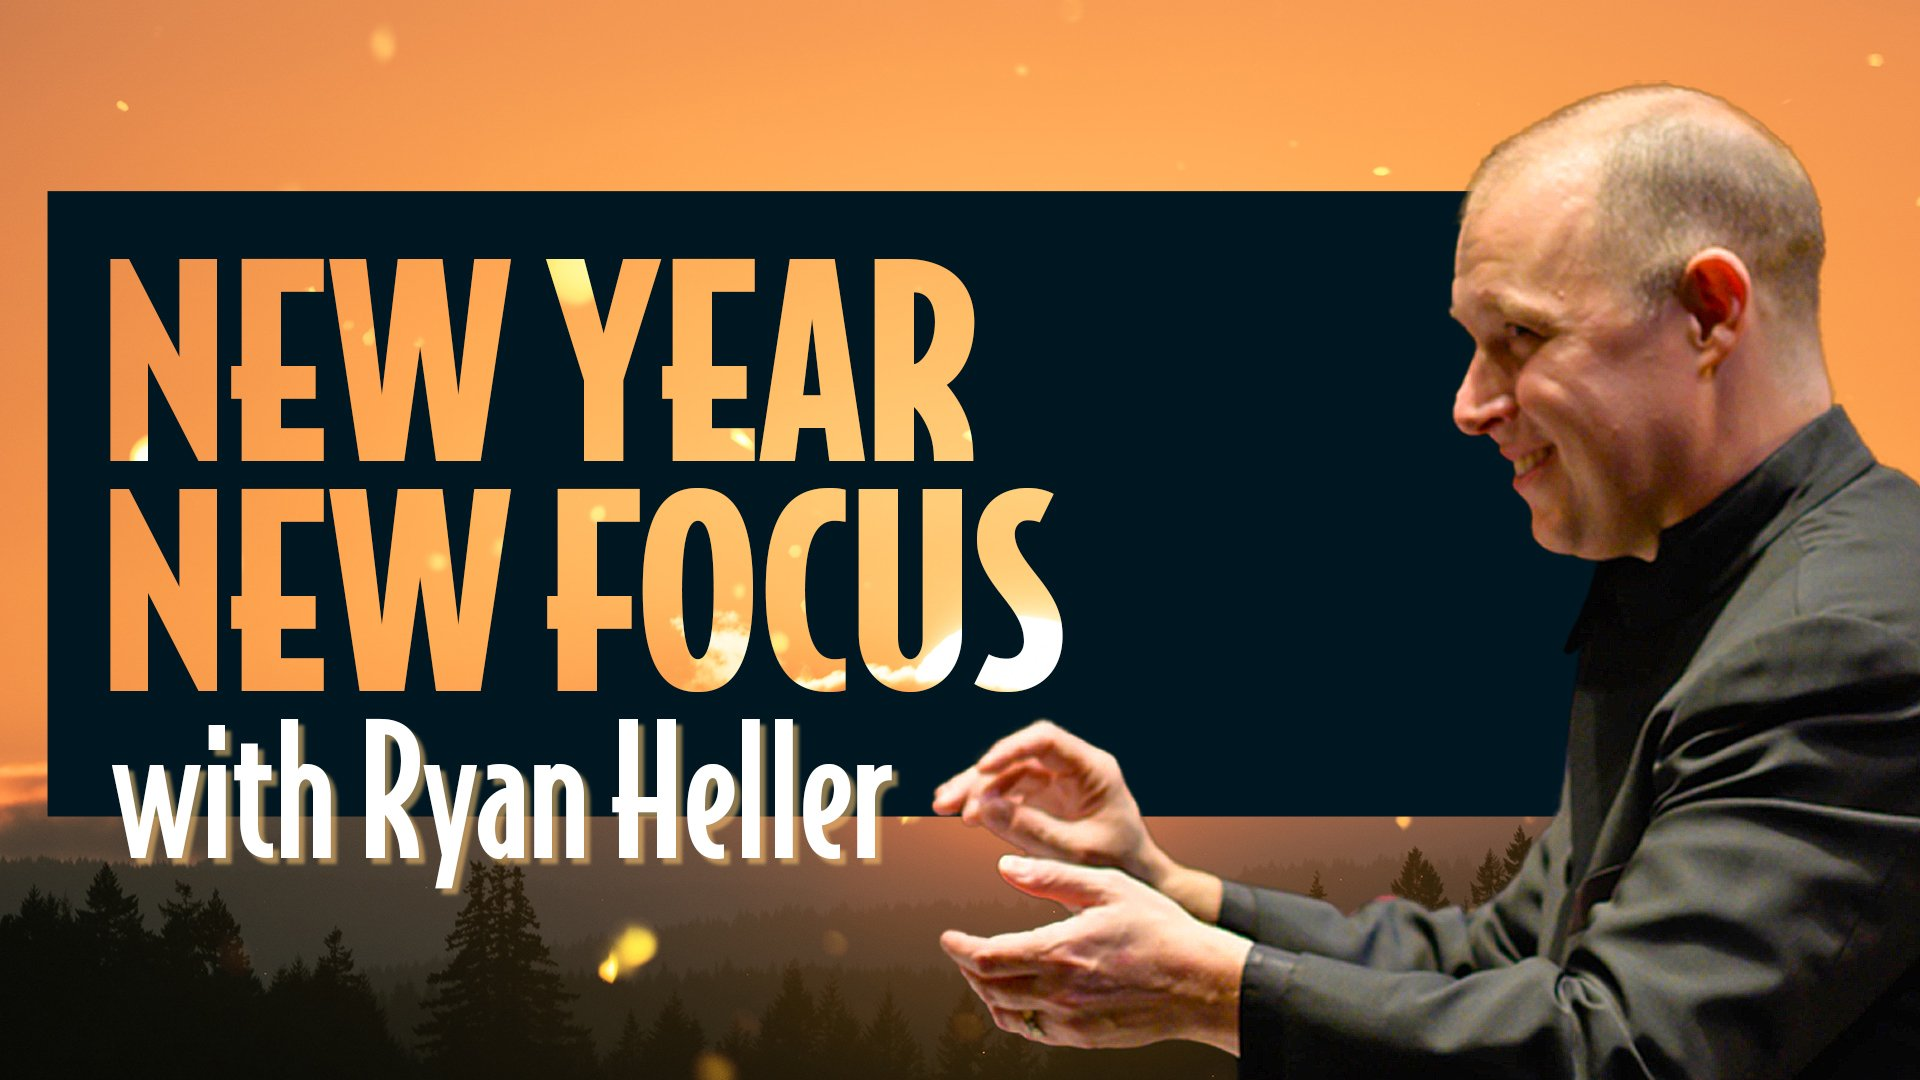 New Year, New Focus with Ryan Heller